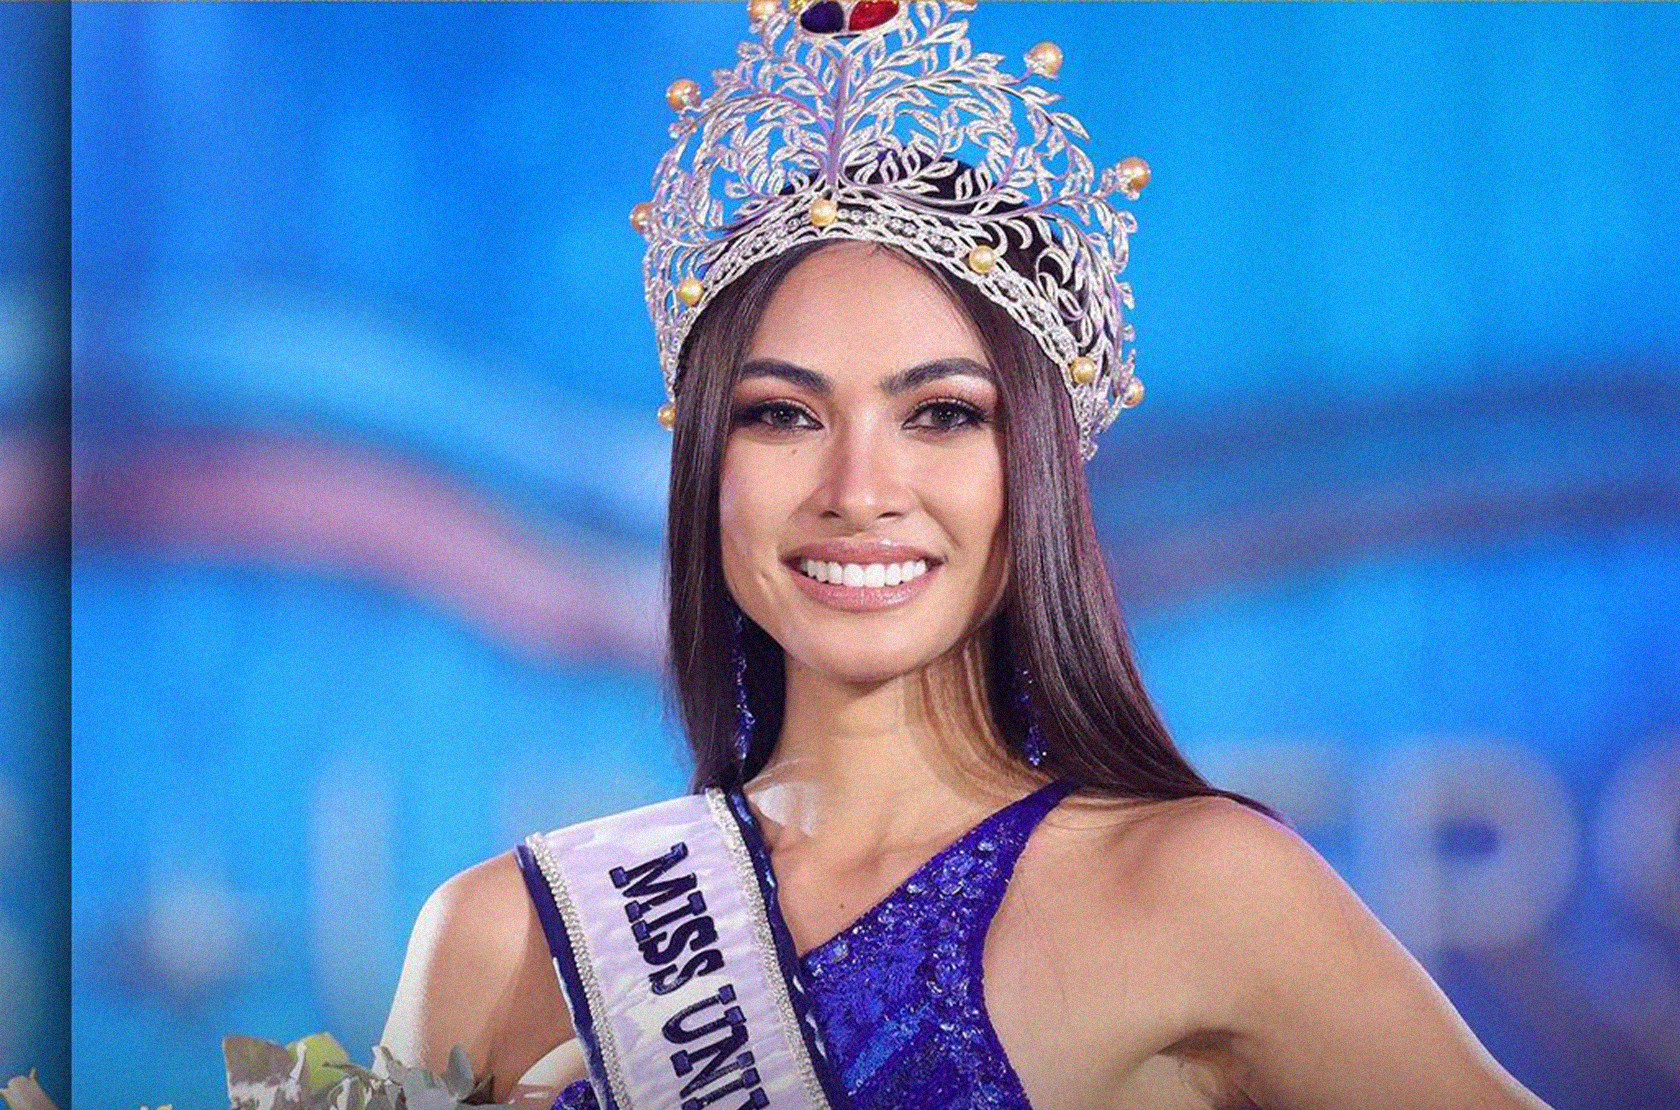 HERE ARE ALL THE PRIZES THAT THE NEW MISS UNIVERSE PHILIPPINES IS TAKING HOME